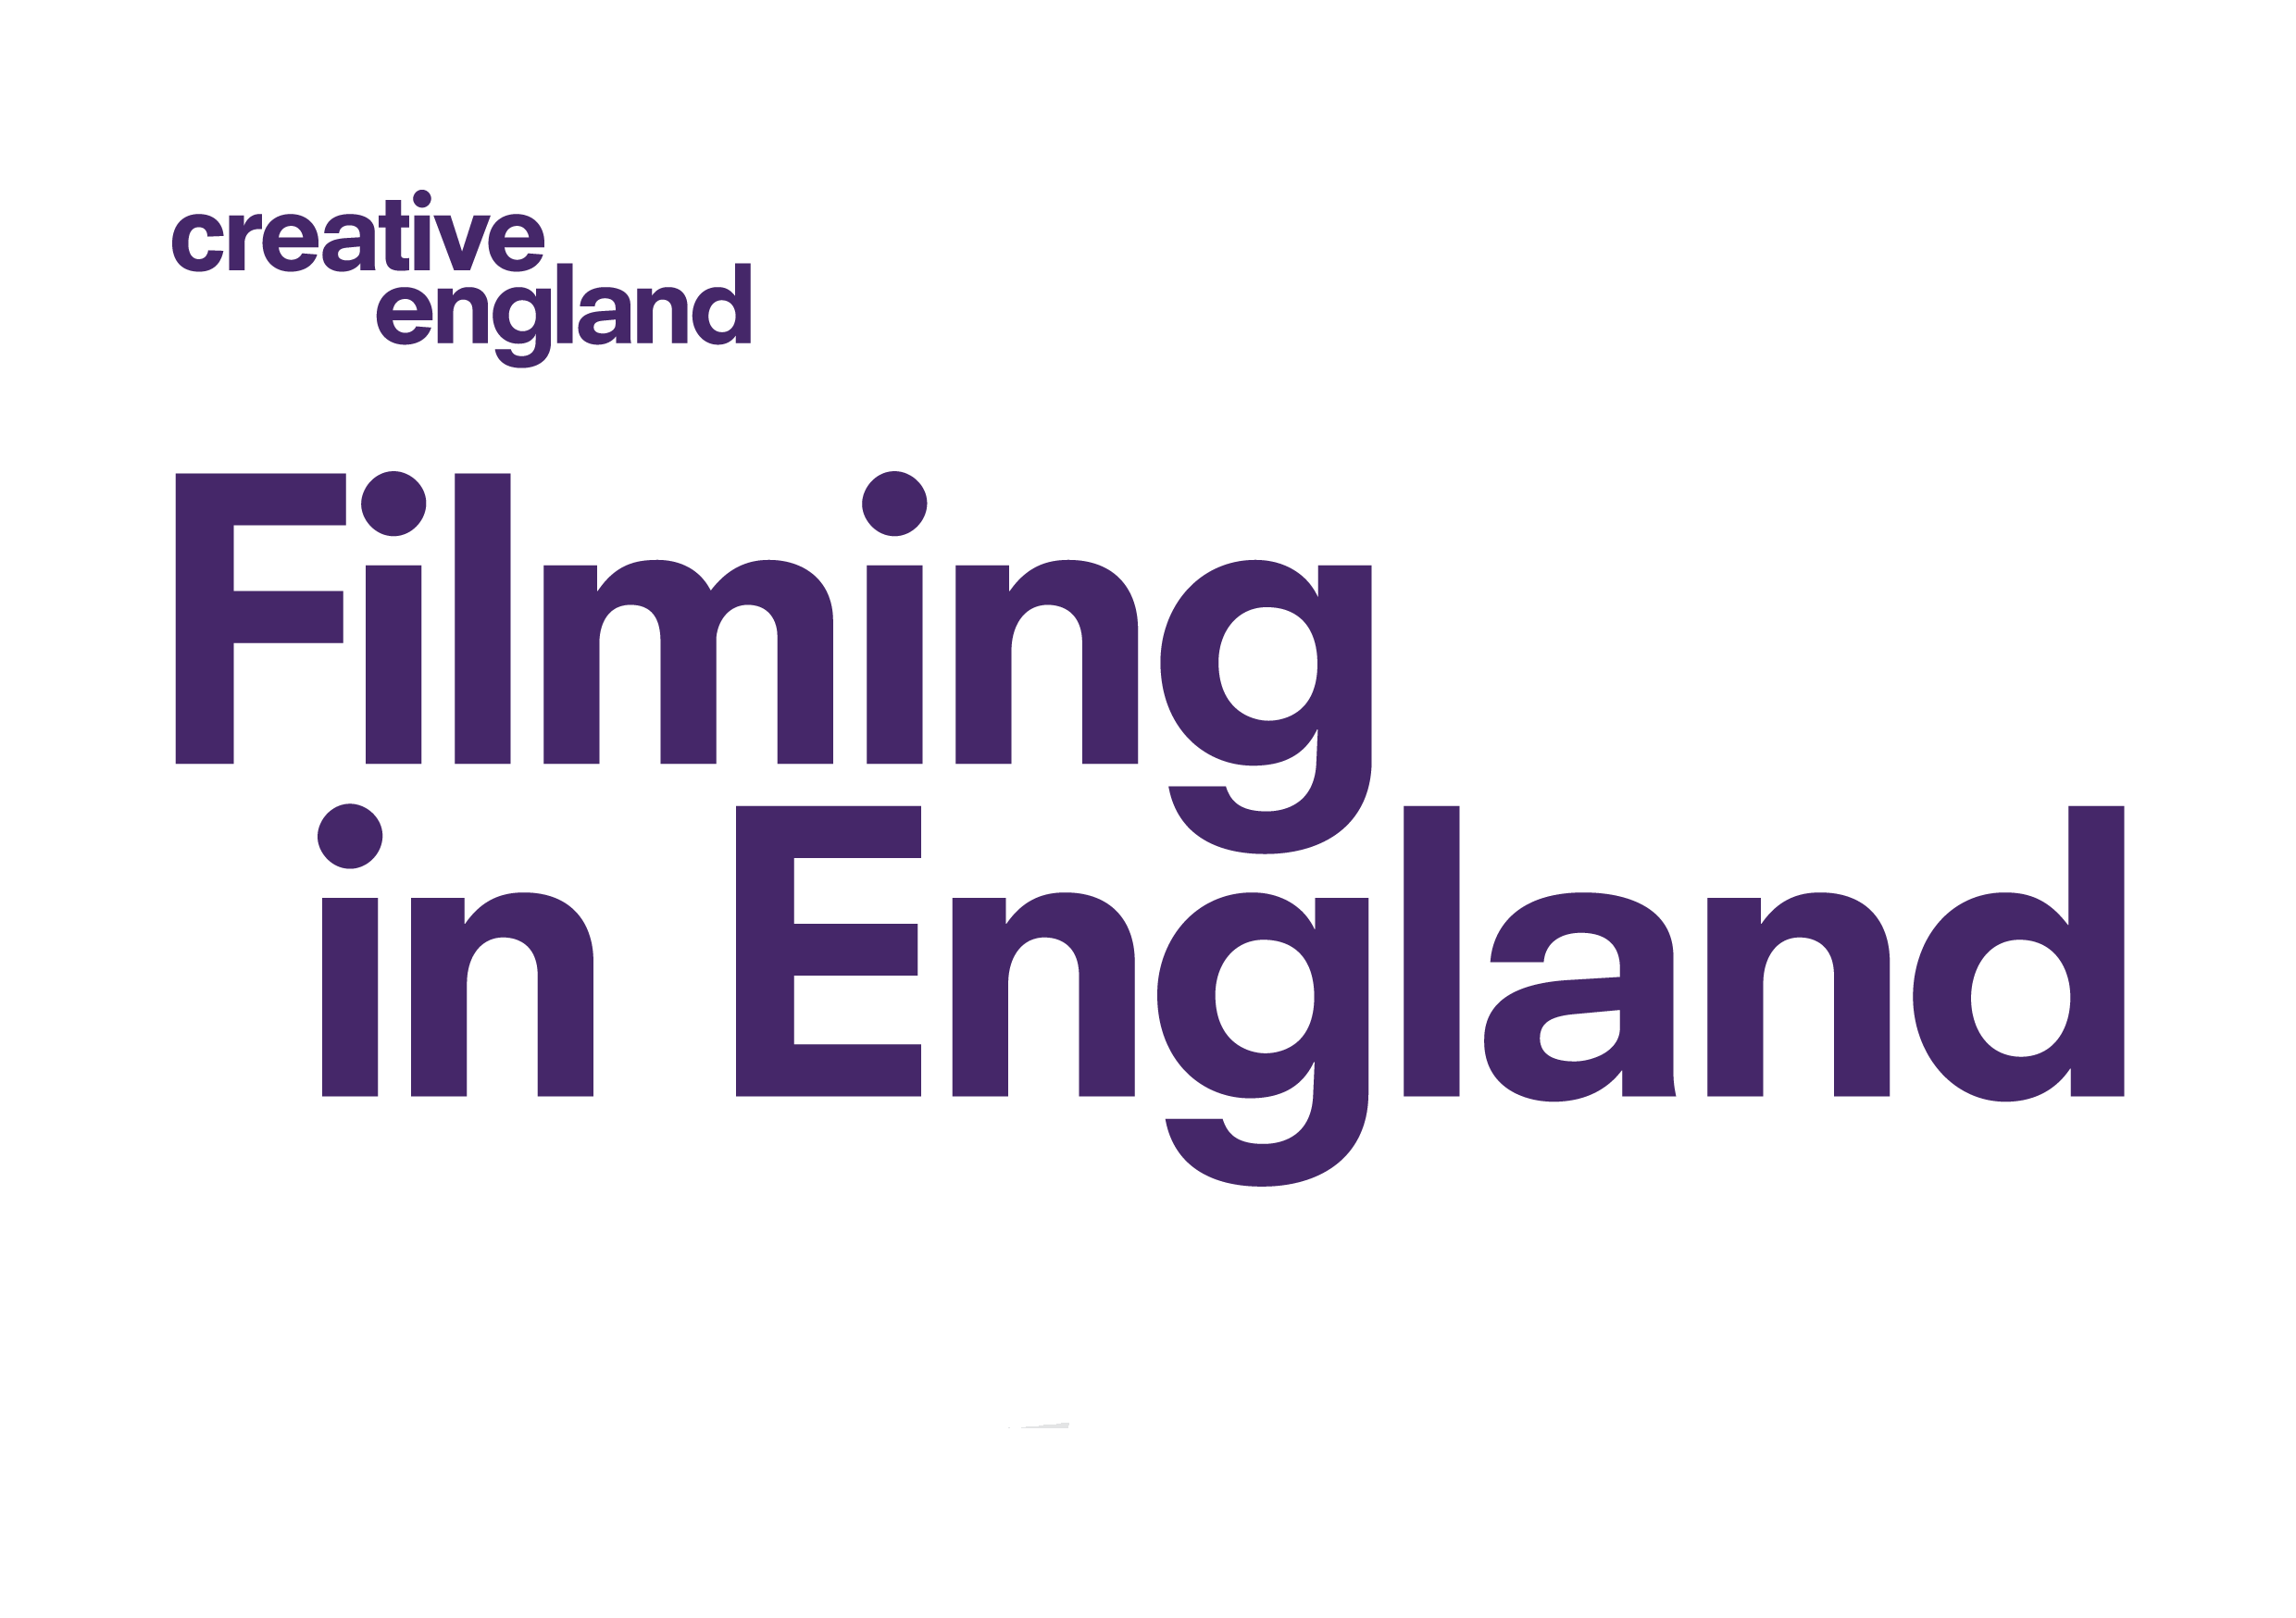 For all filming enquiries across the East Midlands Image